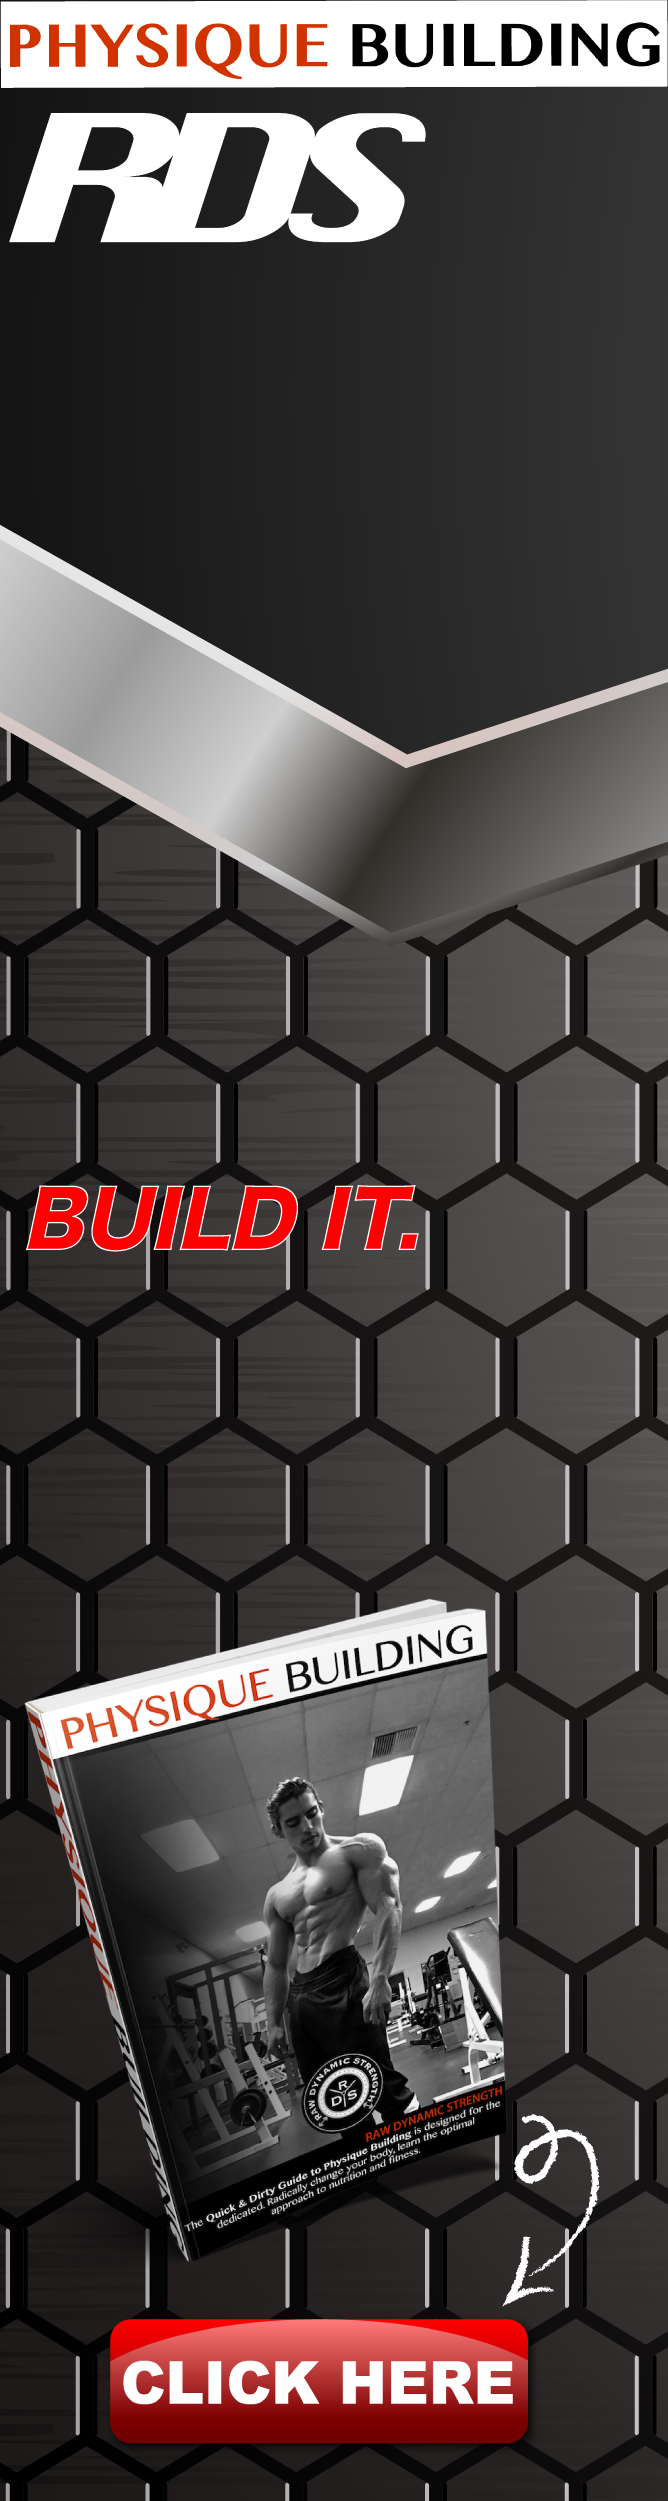 buildit.png